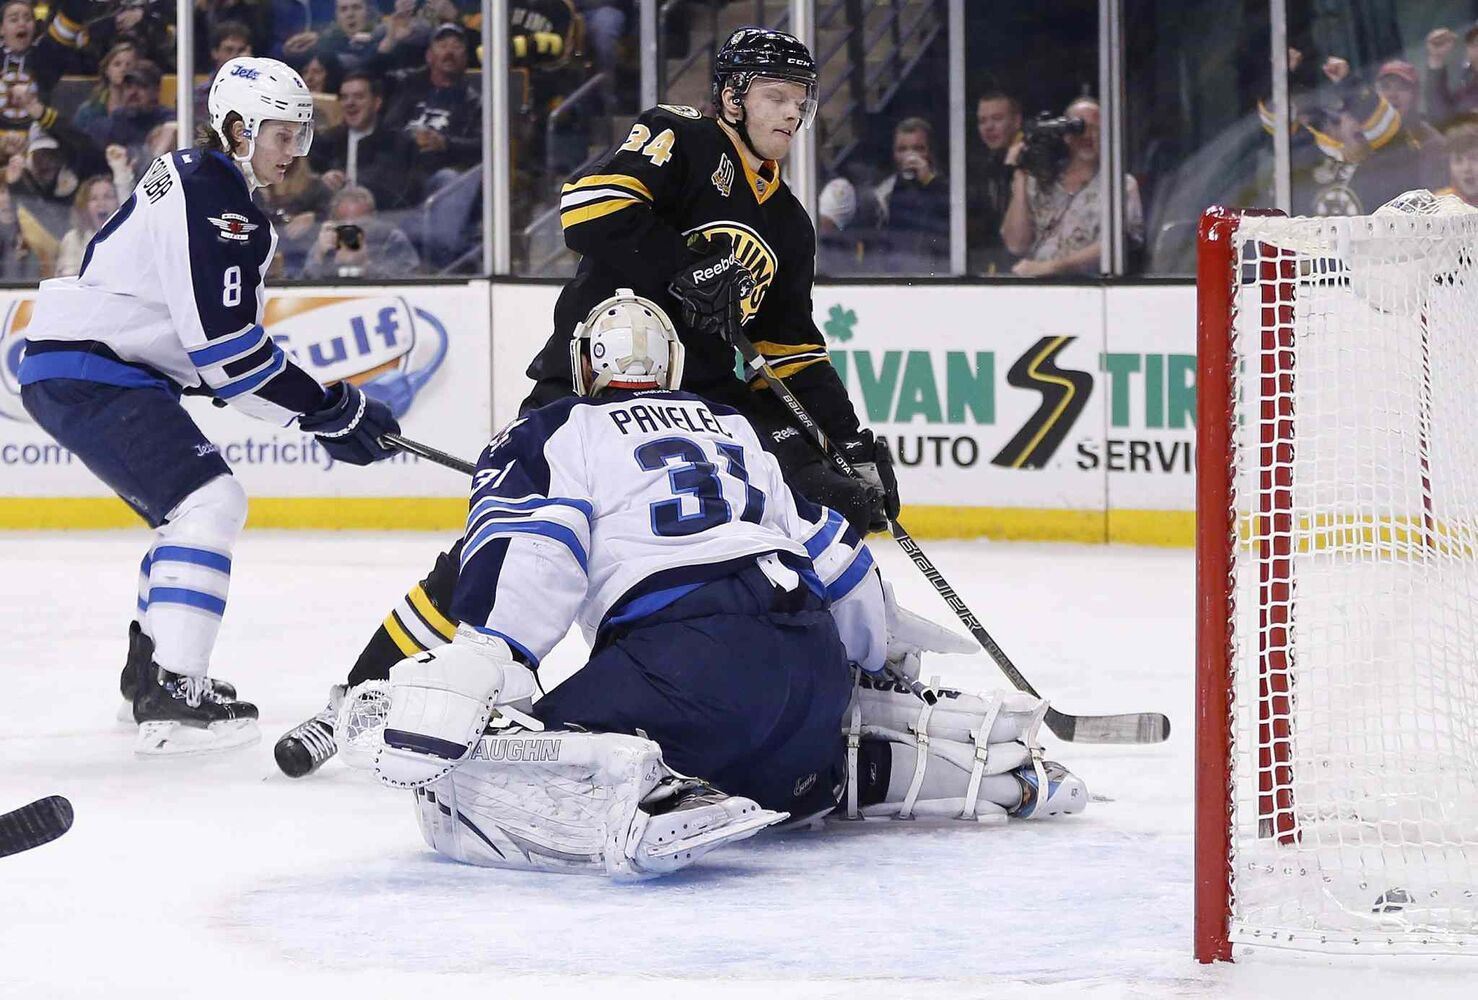 Boston Bruins' Carl Soderberg (34) scores past Winnipeg Jets' Ondrej Pavelec (31) during the game's second period in Boston Saturday. (Michael Dwyer / The Associated Press)